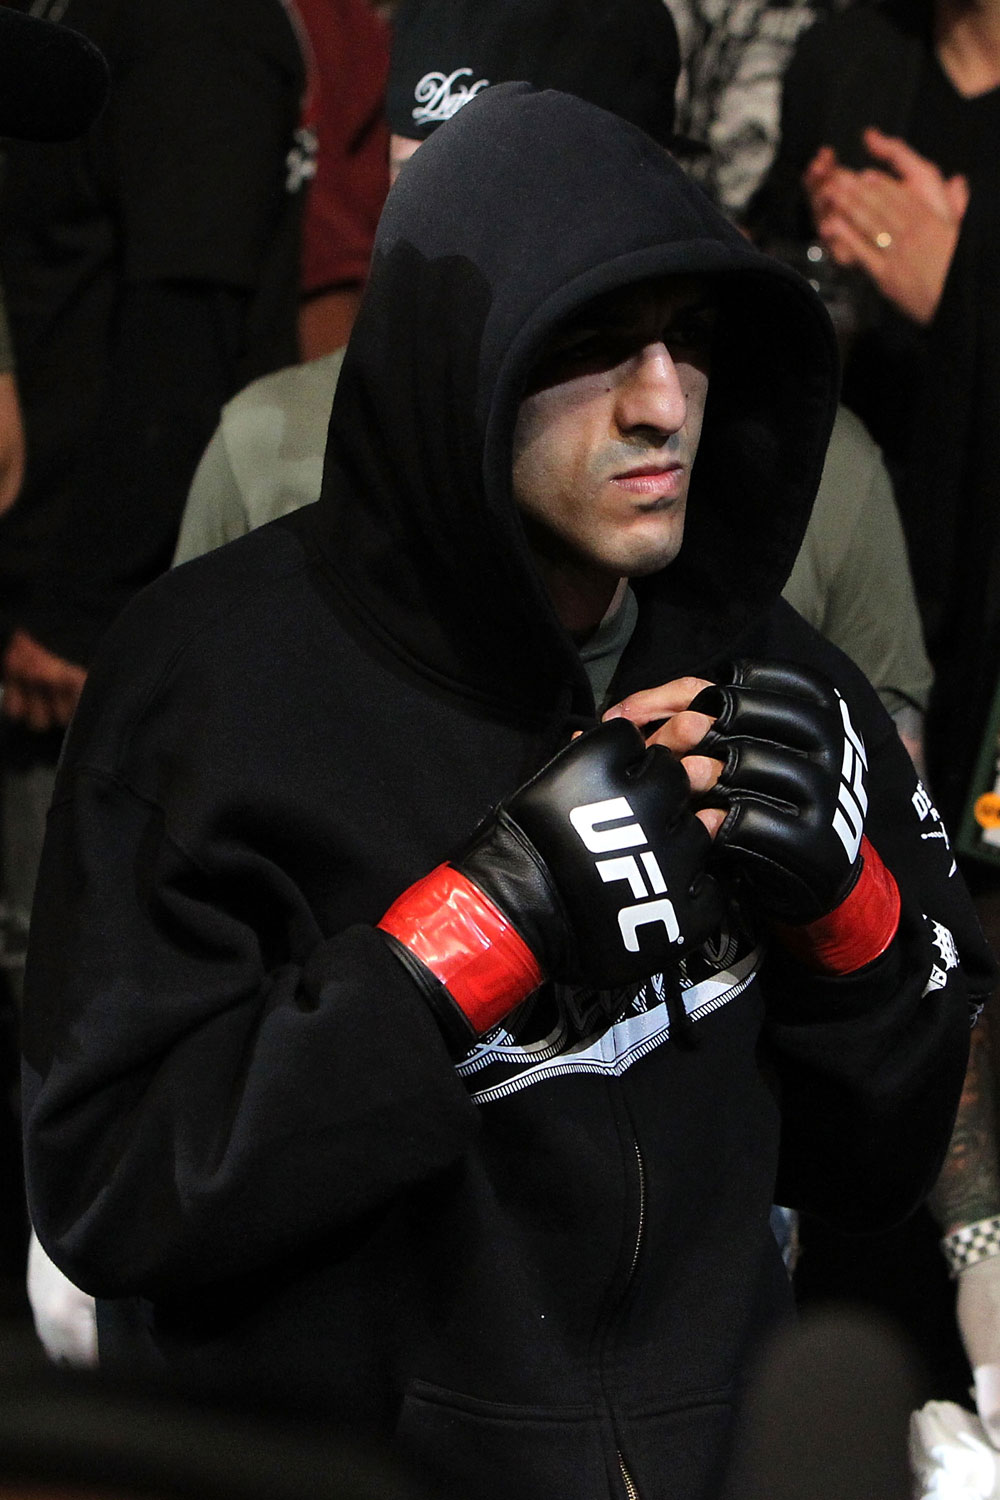 UFC 123: George Sotiropolous enters the arena.